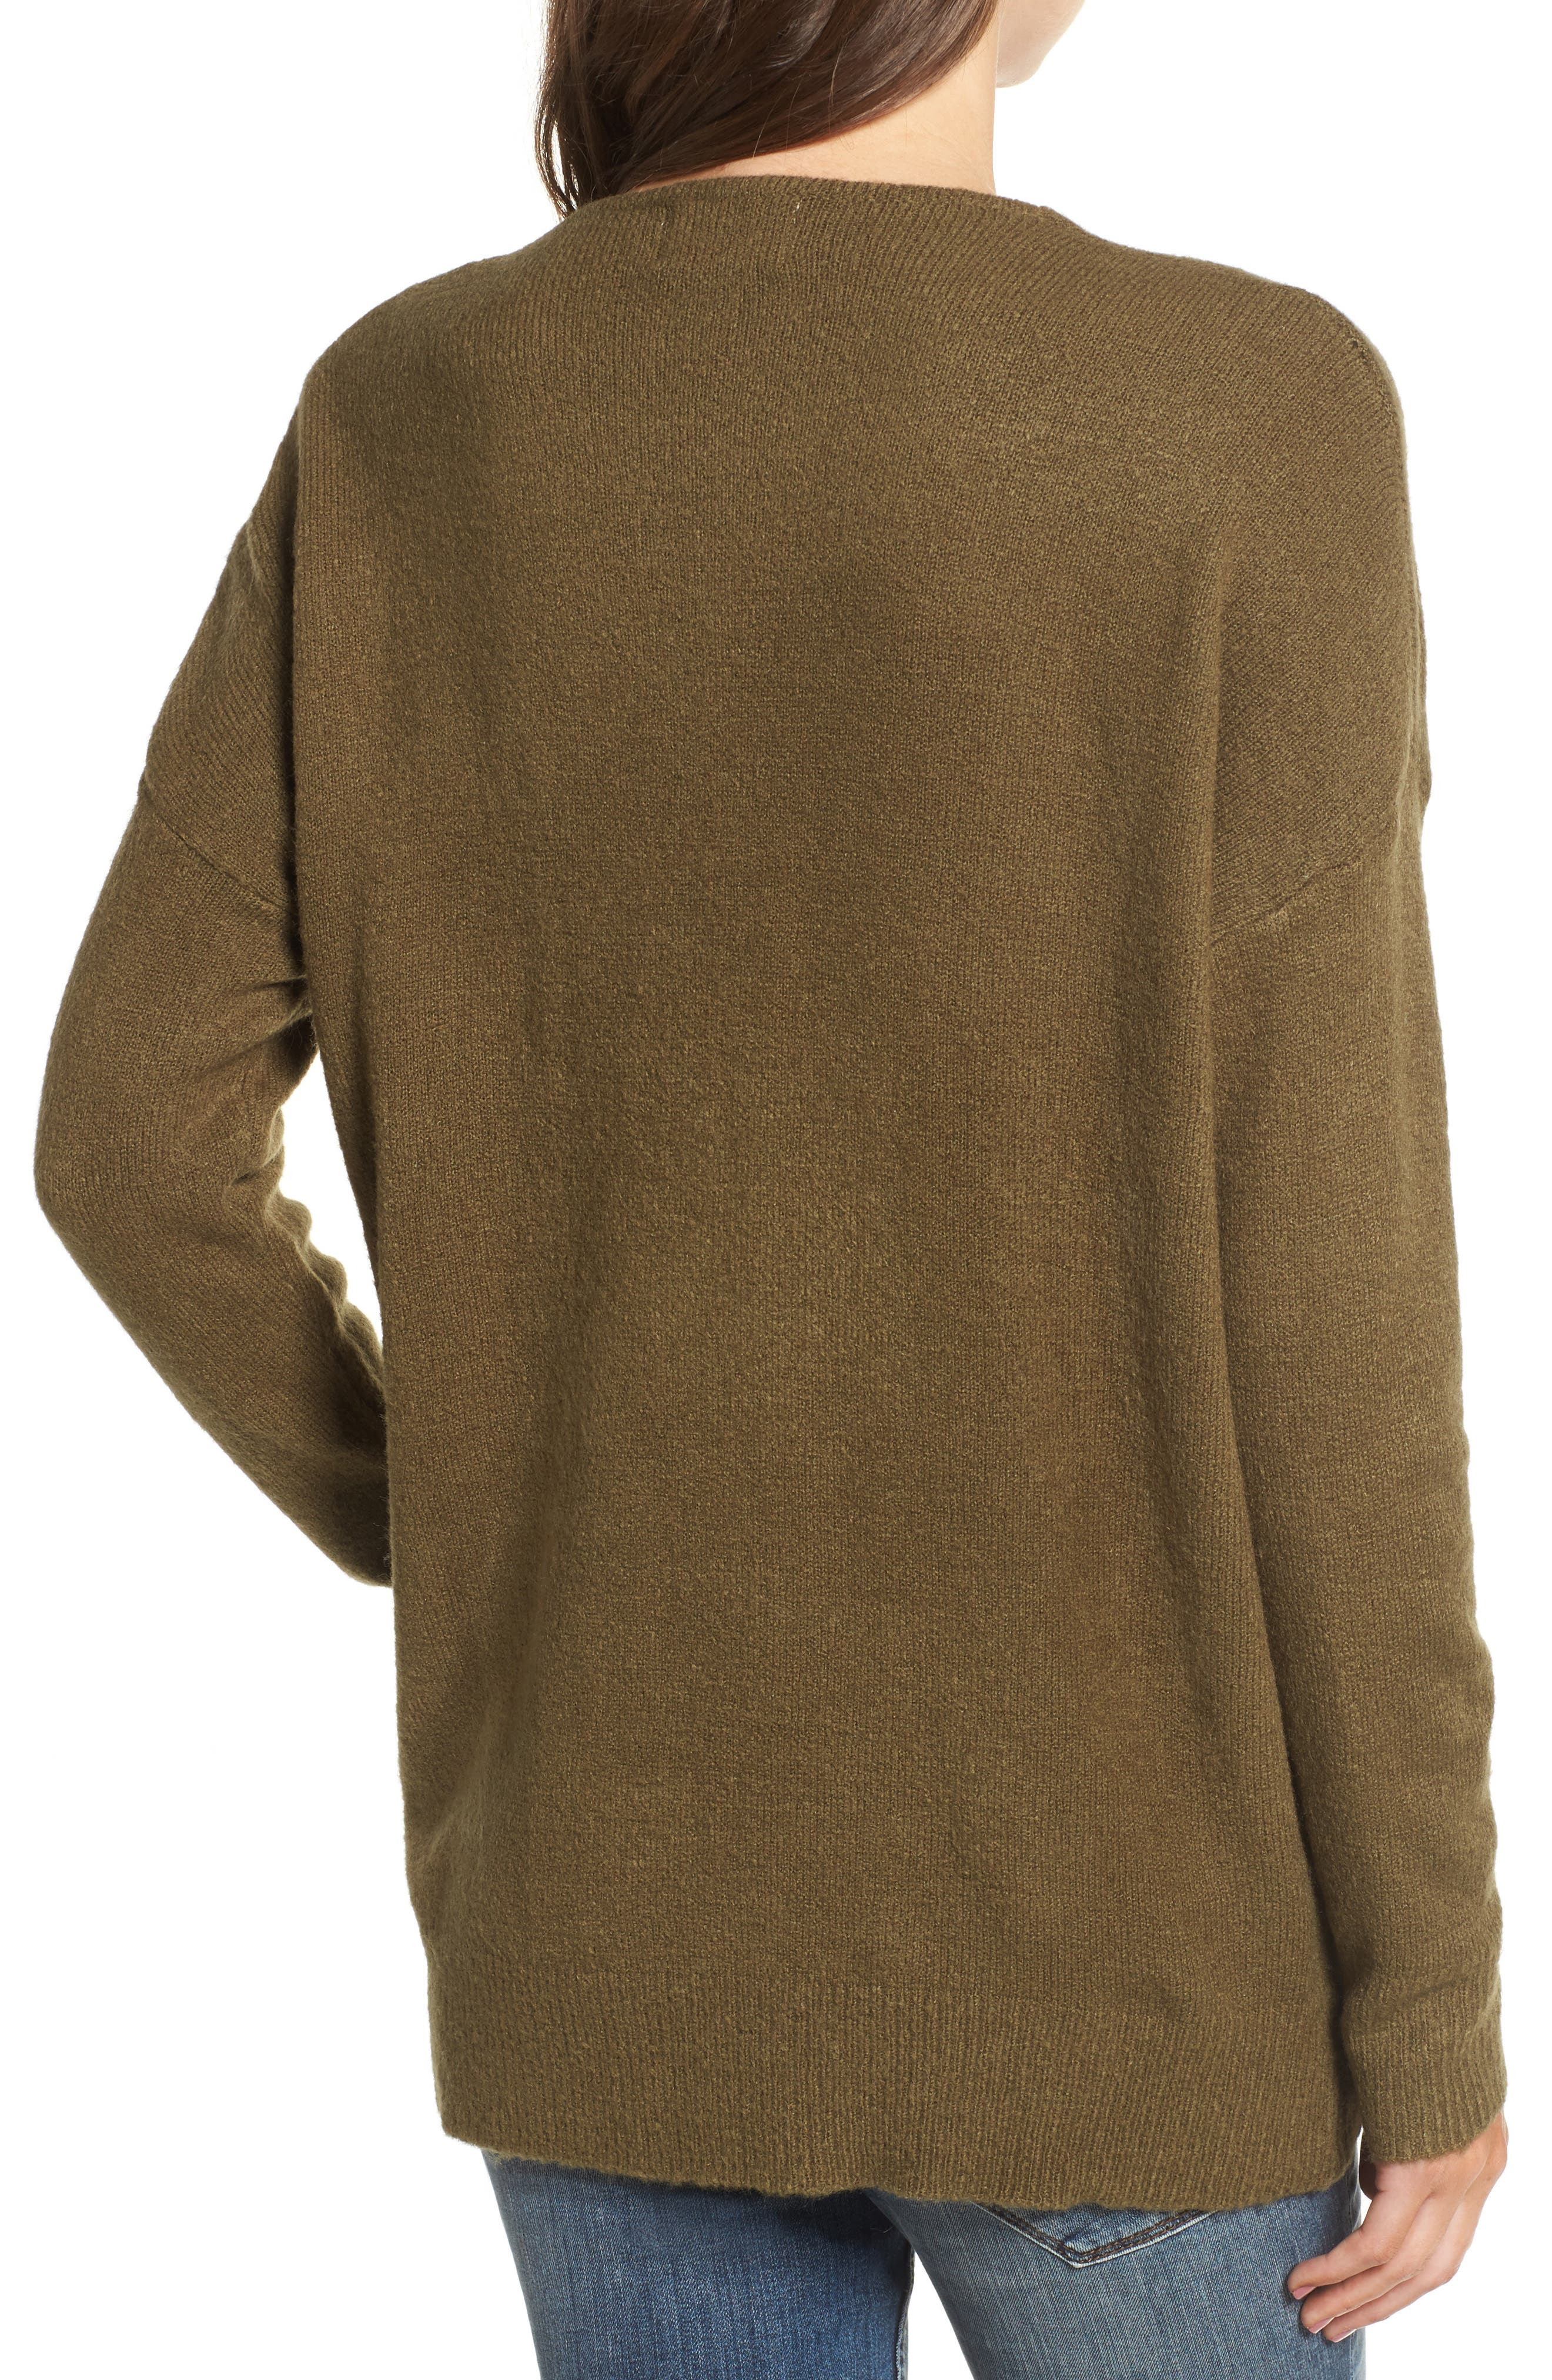 DREAMERS BY DEBUT,                             V-Neck Sweater,                             Alternate thumbnail 2, color,                             310